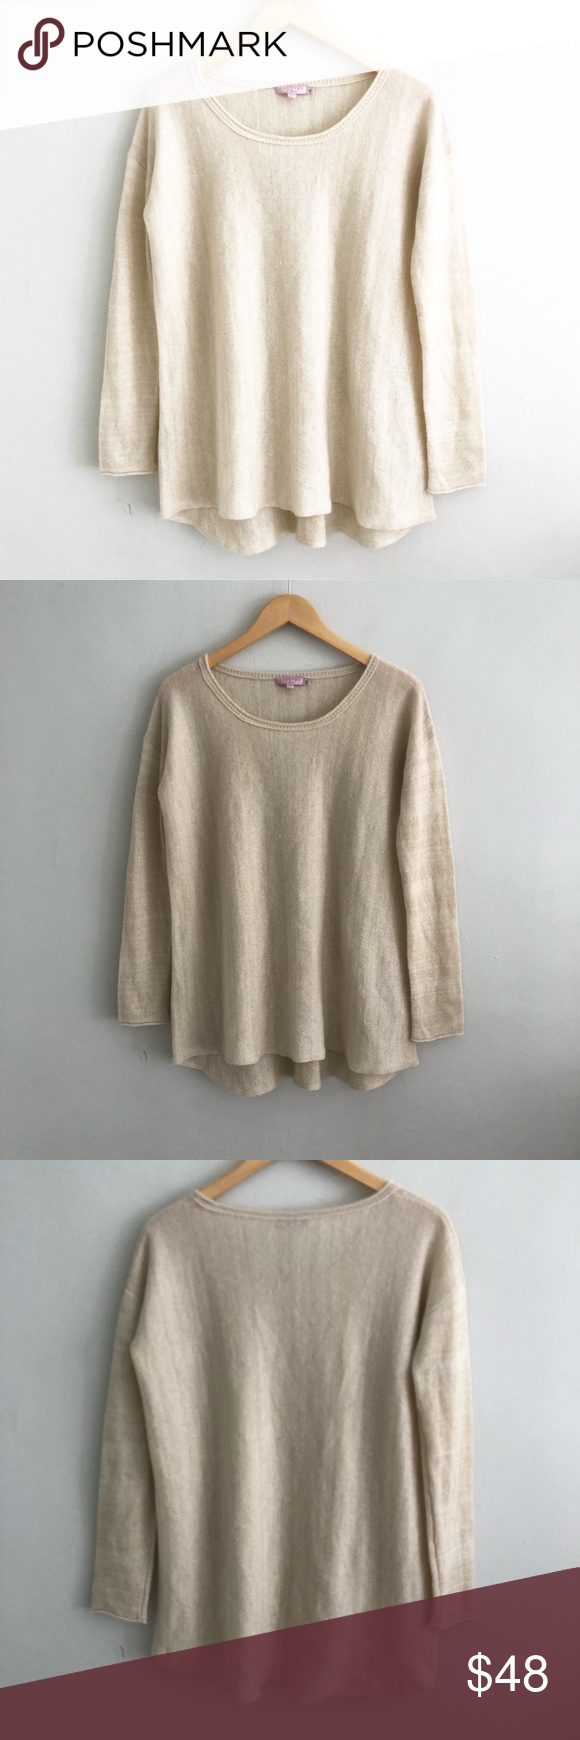 94e9feee05f Calypso St Barth Beige Metallic Pullover Sweater Gently pre-loved with no  rips or stains